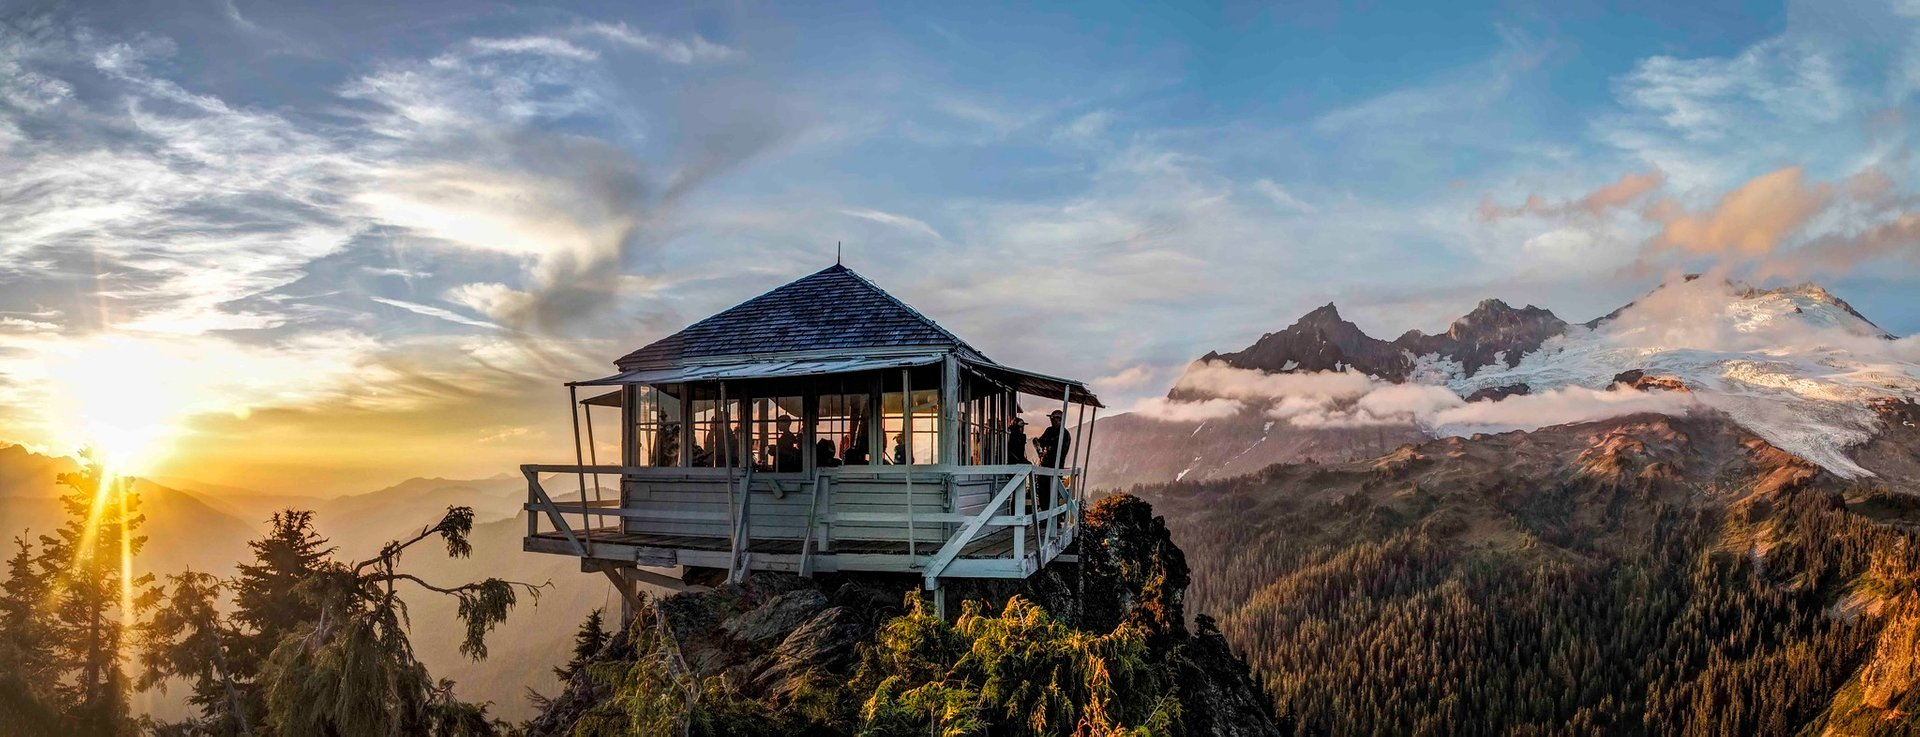 Best time for Park Butte Lookout in Washington 2019